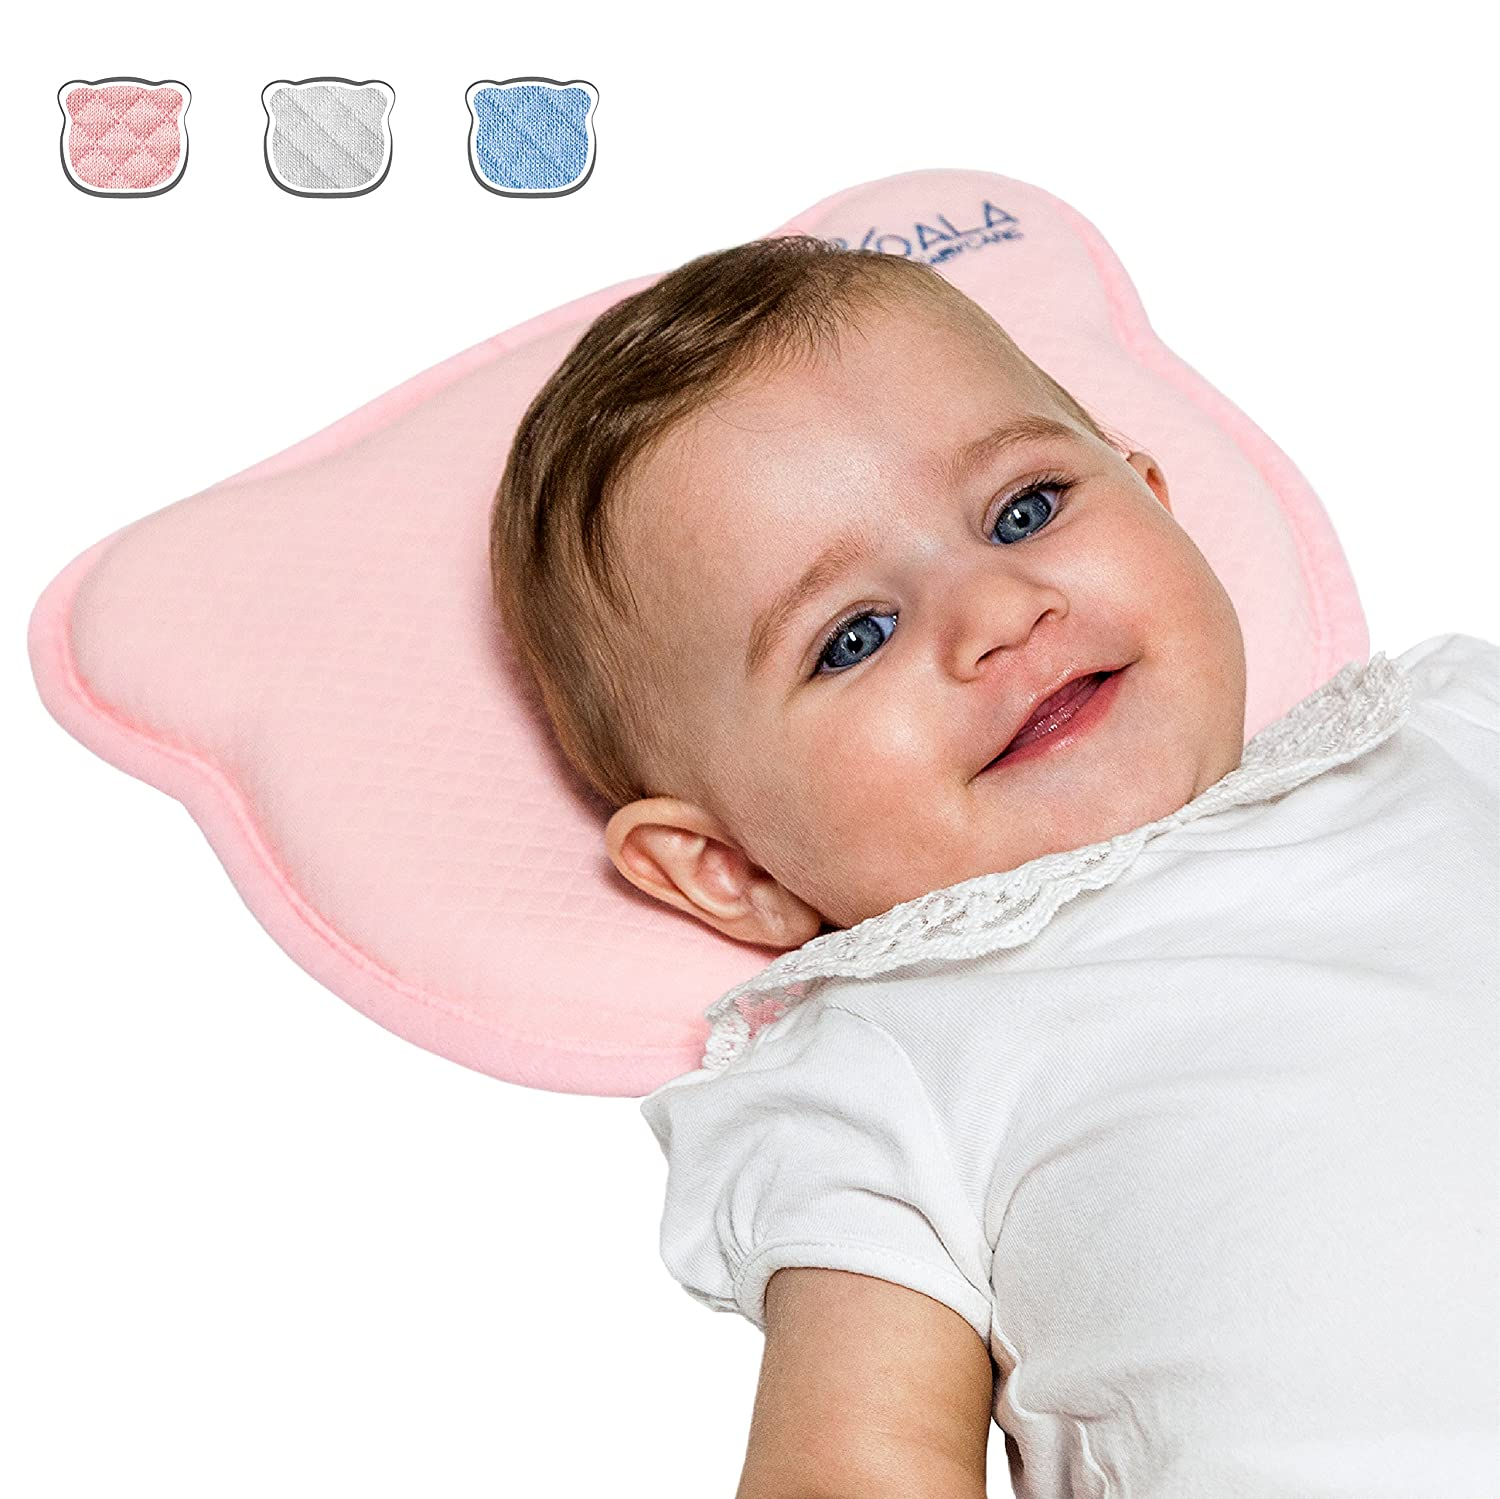 Perfect Head White KoalaBabycare/® Plagiocephaly Baby Pillow with Two Removable Covers for The Prevention and Cure of Flat Head Syndrome in Memory Foam Anti-Suffocation